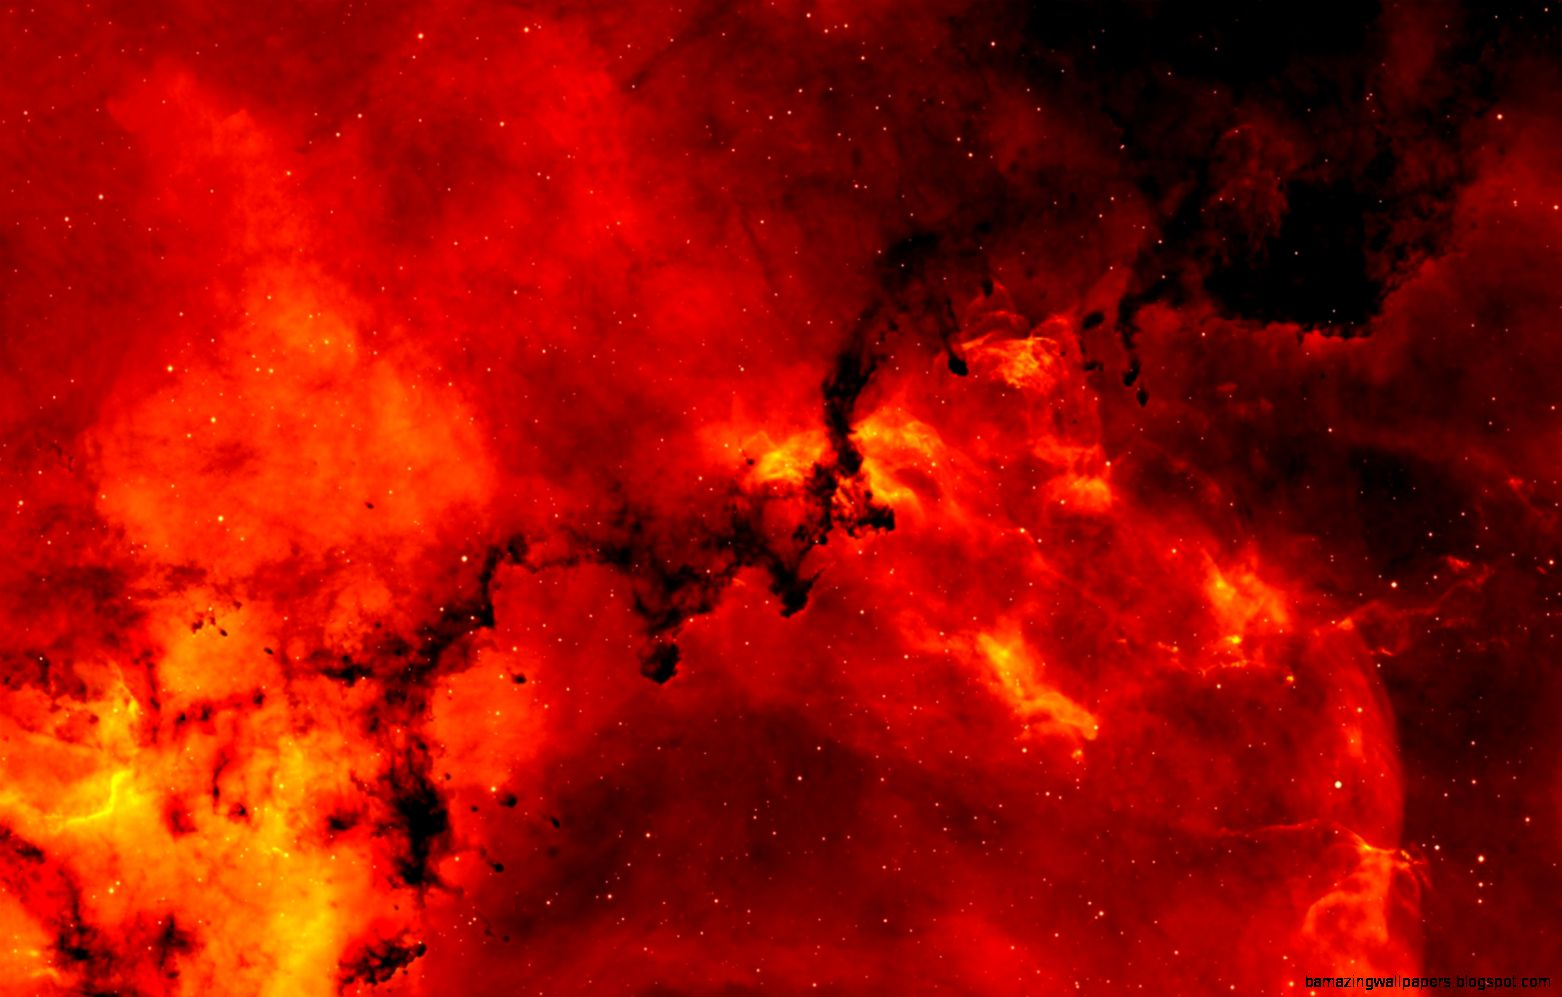 Red Space Wallpaper 1920x1080 Amazing Wallpapers